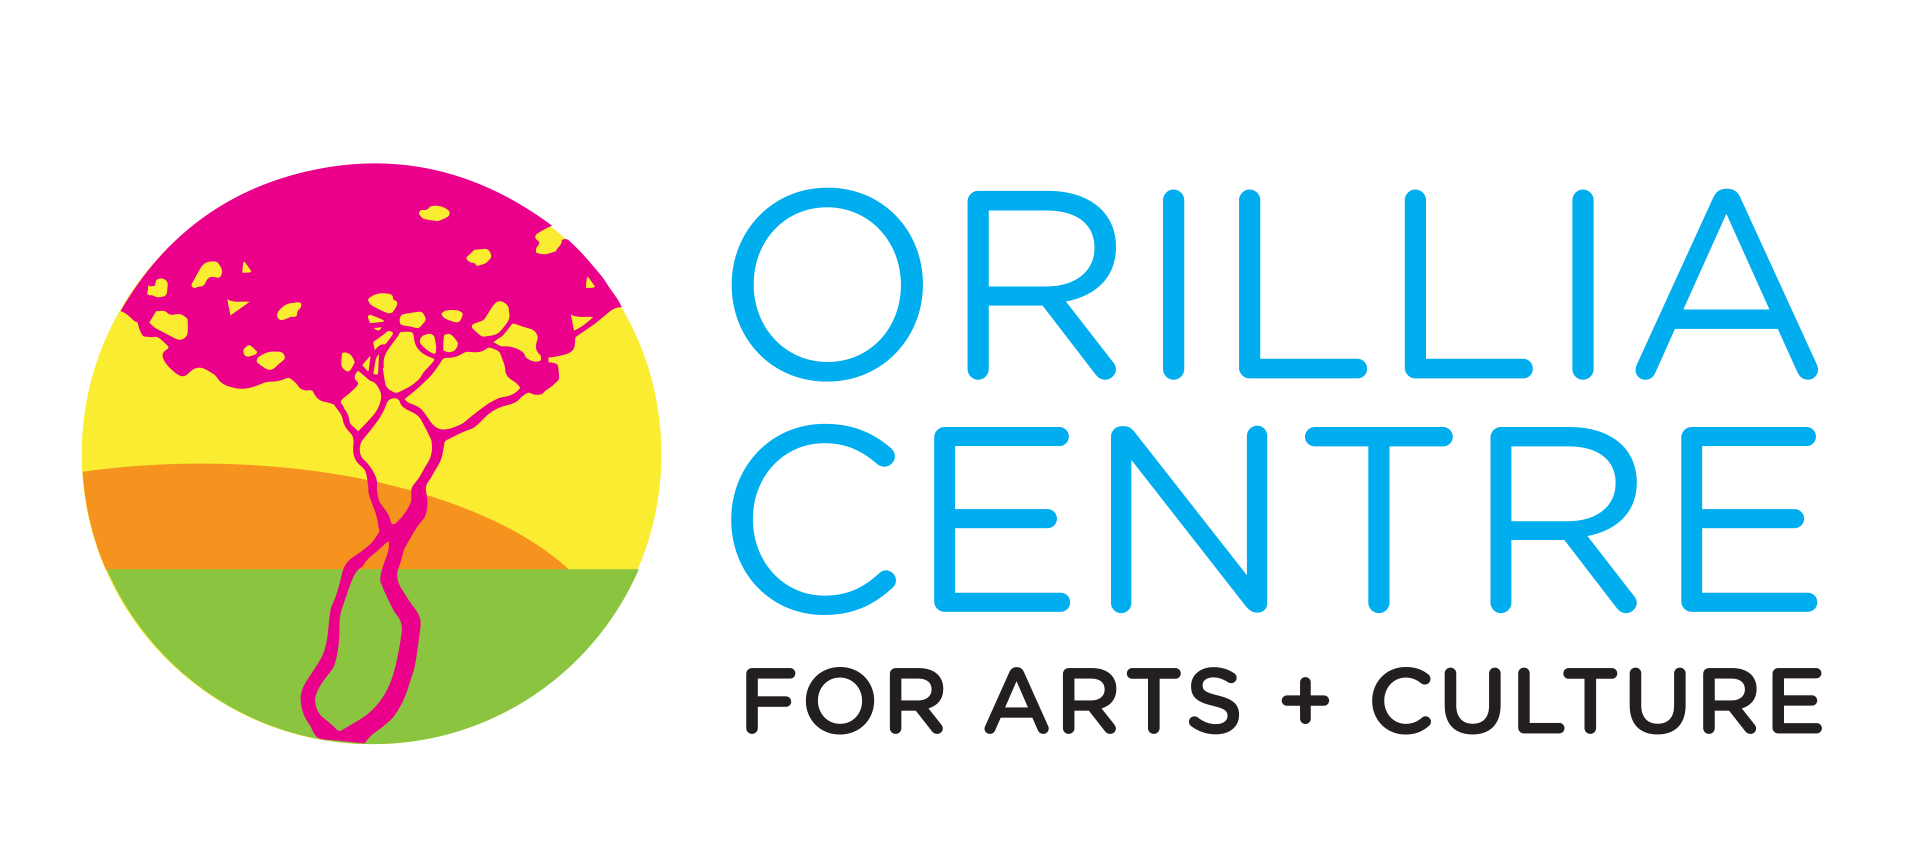 ORILLIA CENTRE FOR ARTS & CULTURE